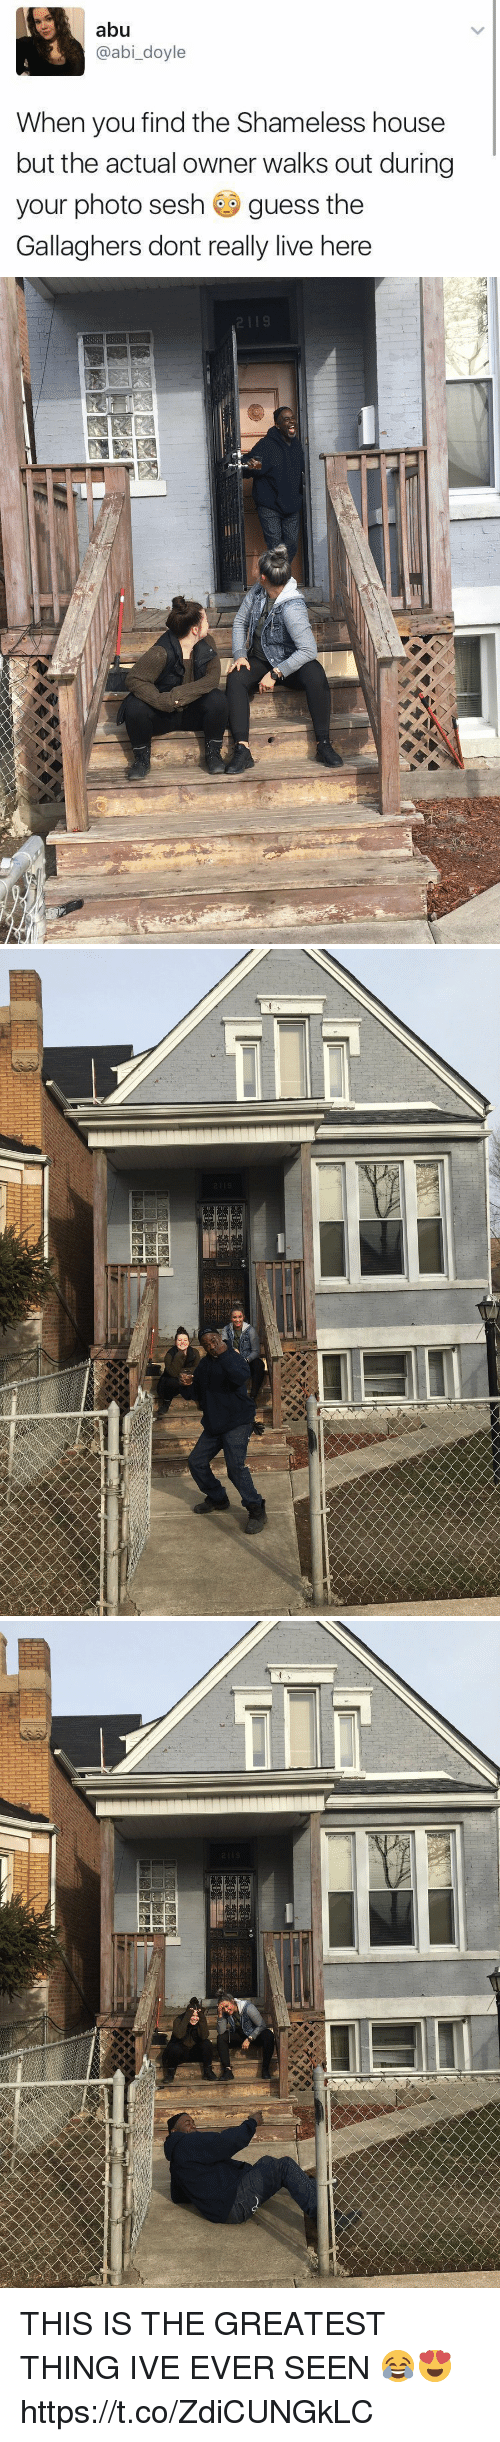 aby: abu  @abi_doyle  When you find the Shameless house  but the actual owner walks out during  your photo sesh guess the  Gallaghers dont really live here   2119 THIS IS THE GREATEST THING IVE EVER SEEN 😂😍 https://t.co/ZdiCUNGkLC